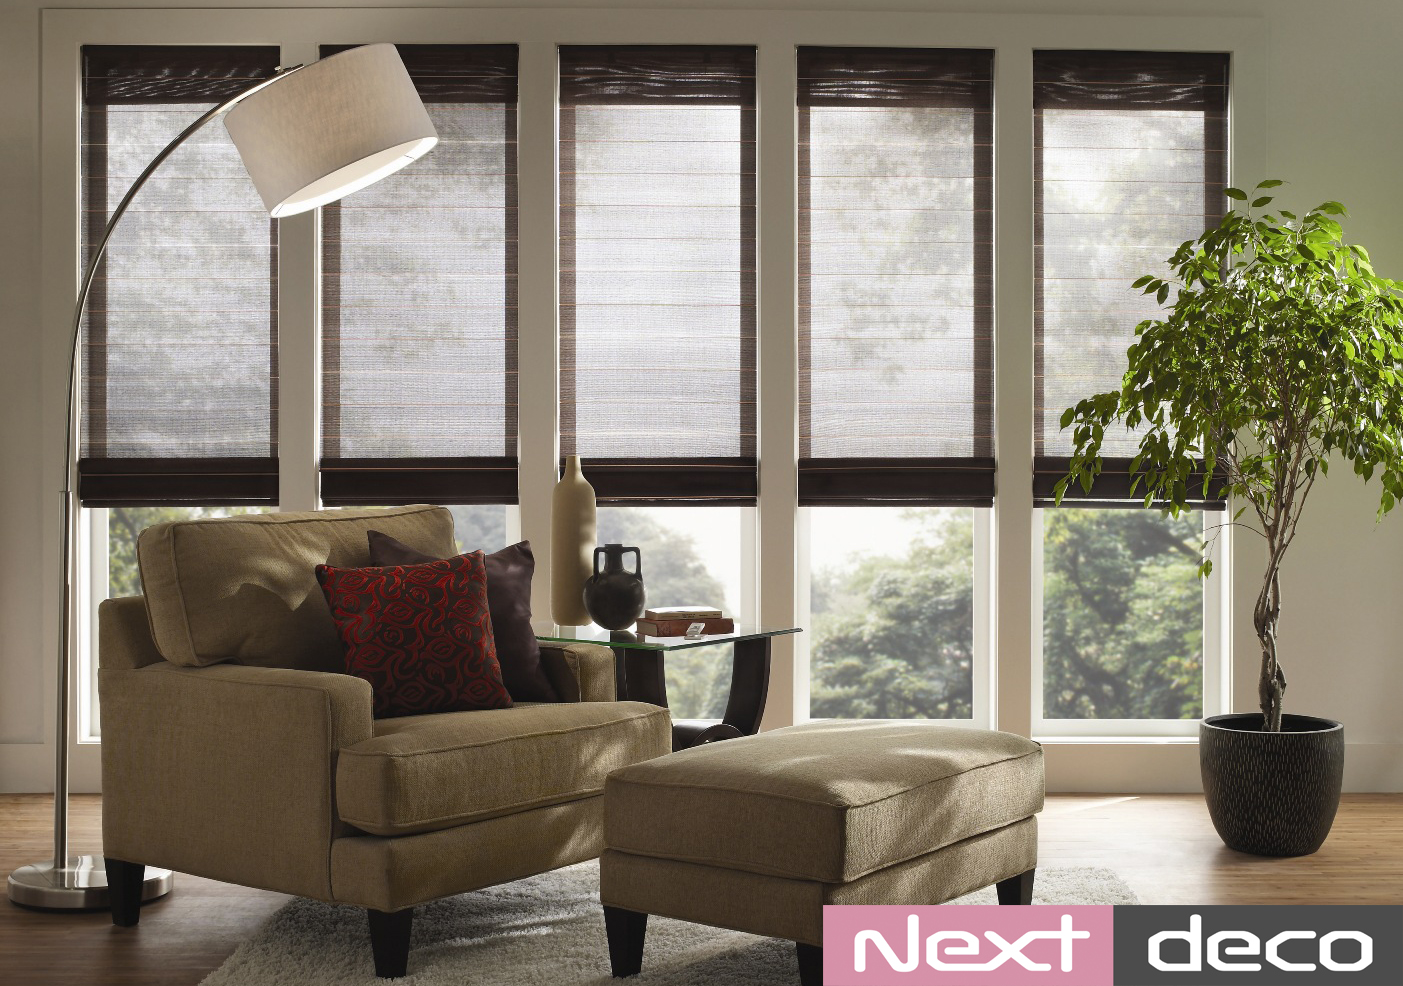 lutron-cortina-decoracion-nextdeco-WovenWood-CherasWalnut copia